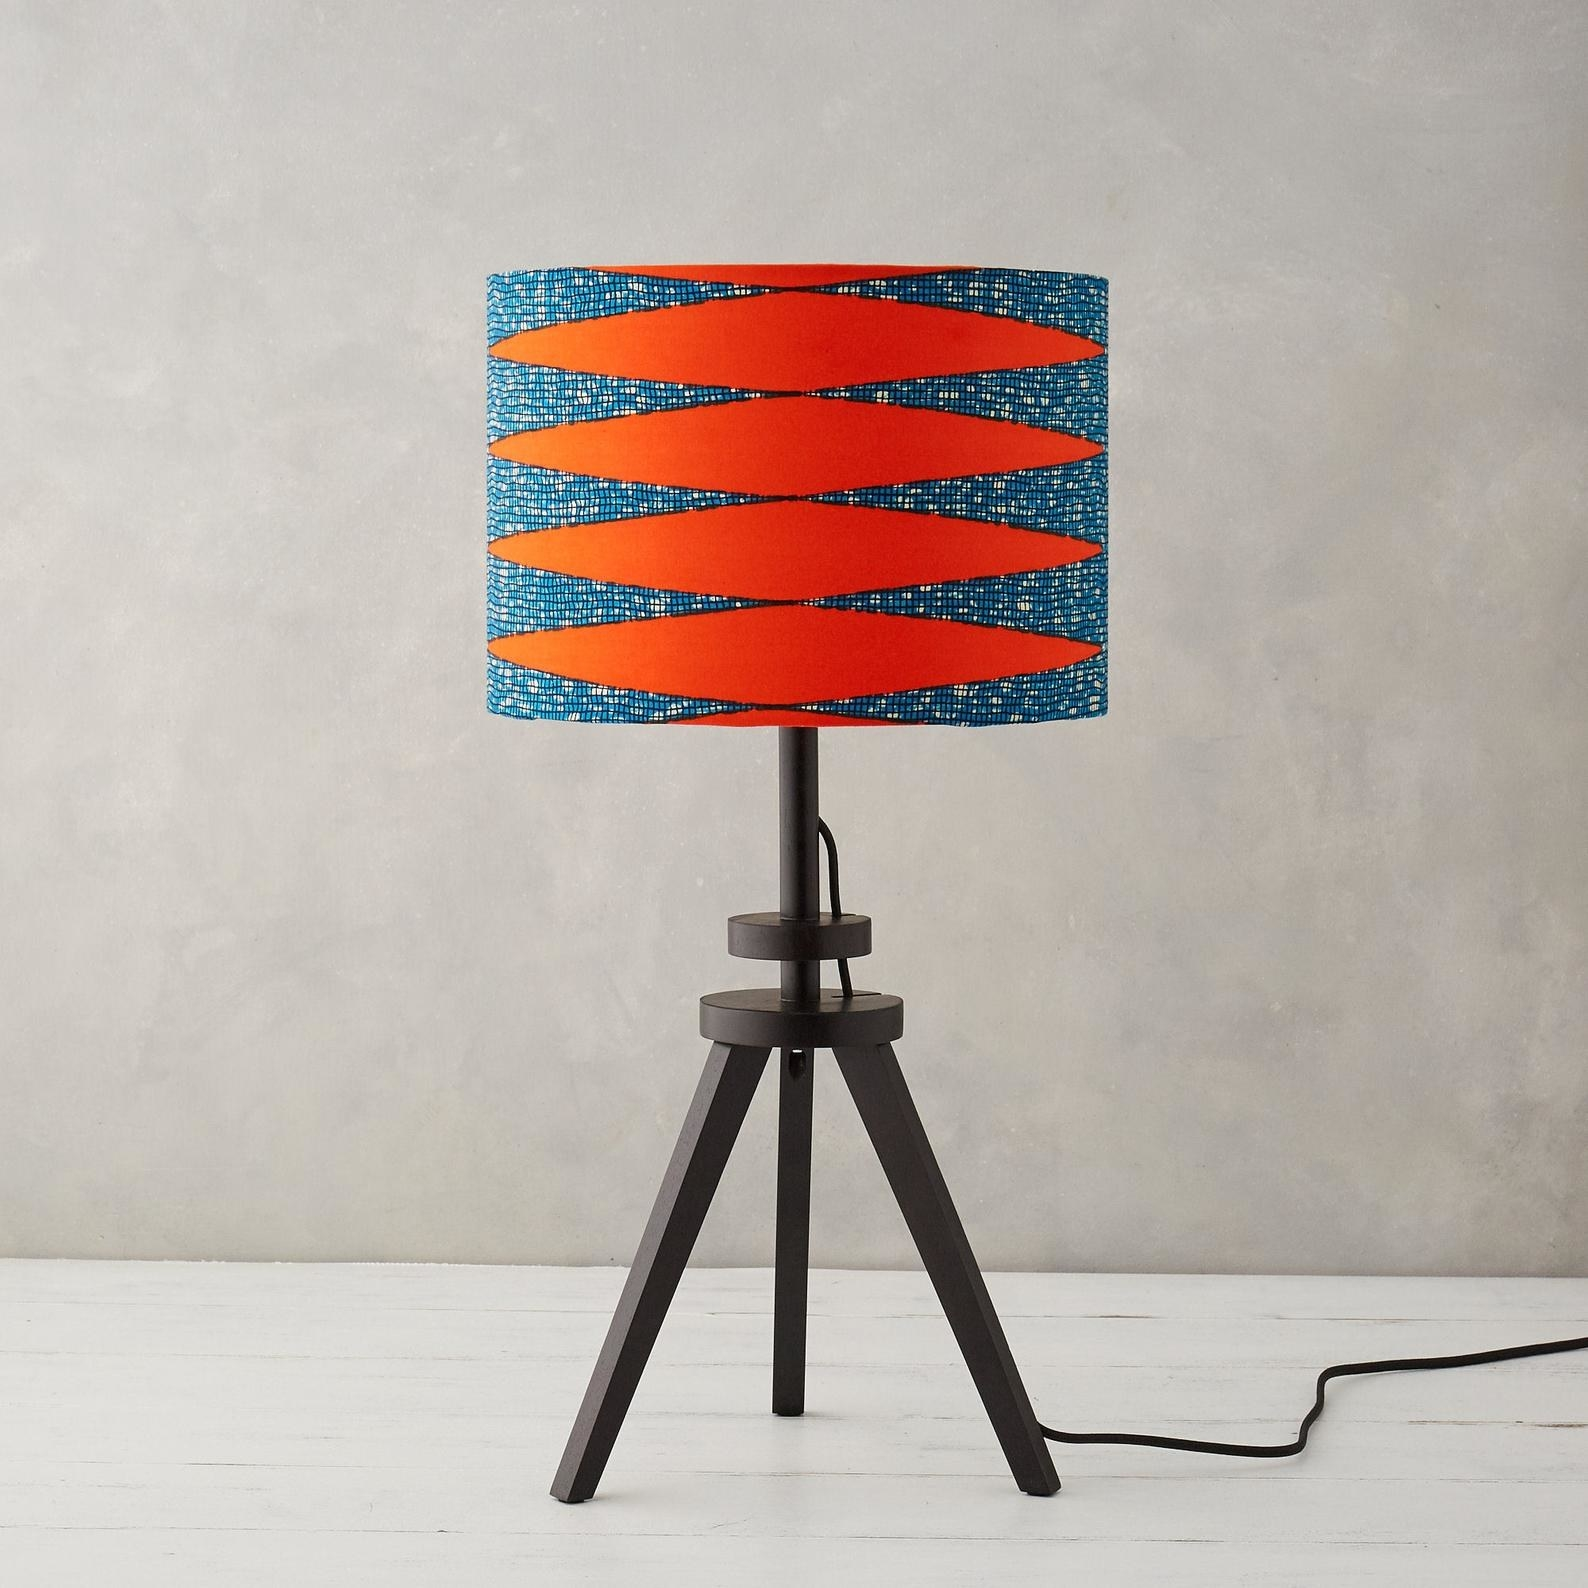 a circular lampshade with bright orange and blue print on it. the lampshade is on a black  tripod-style lamp.